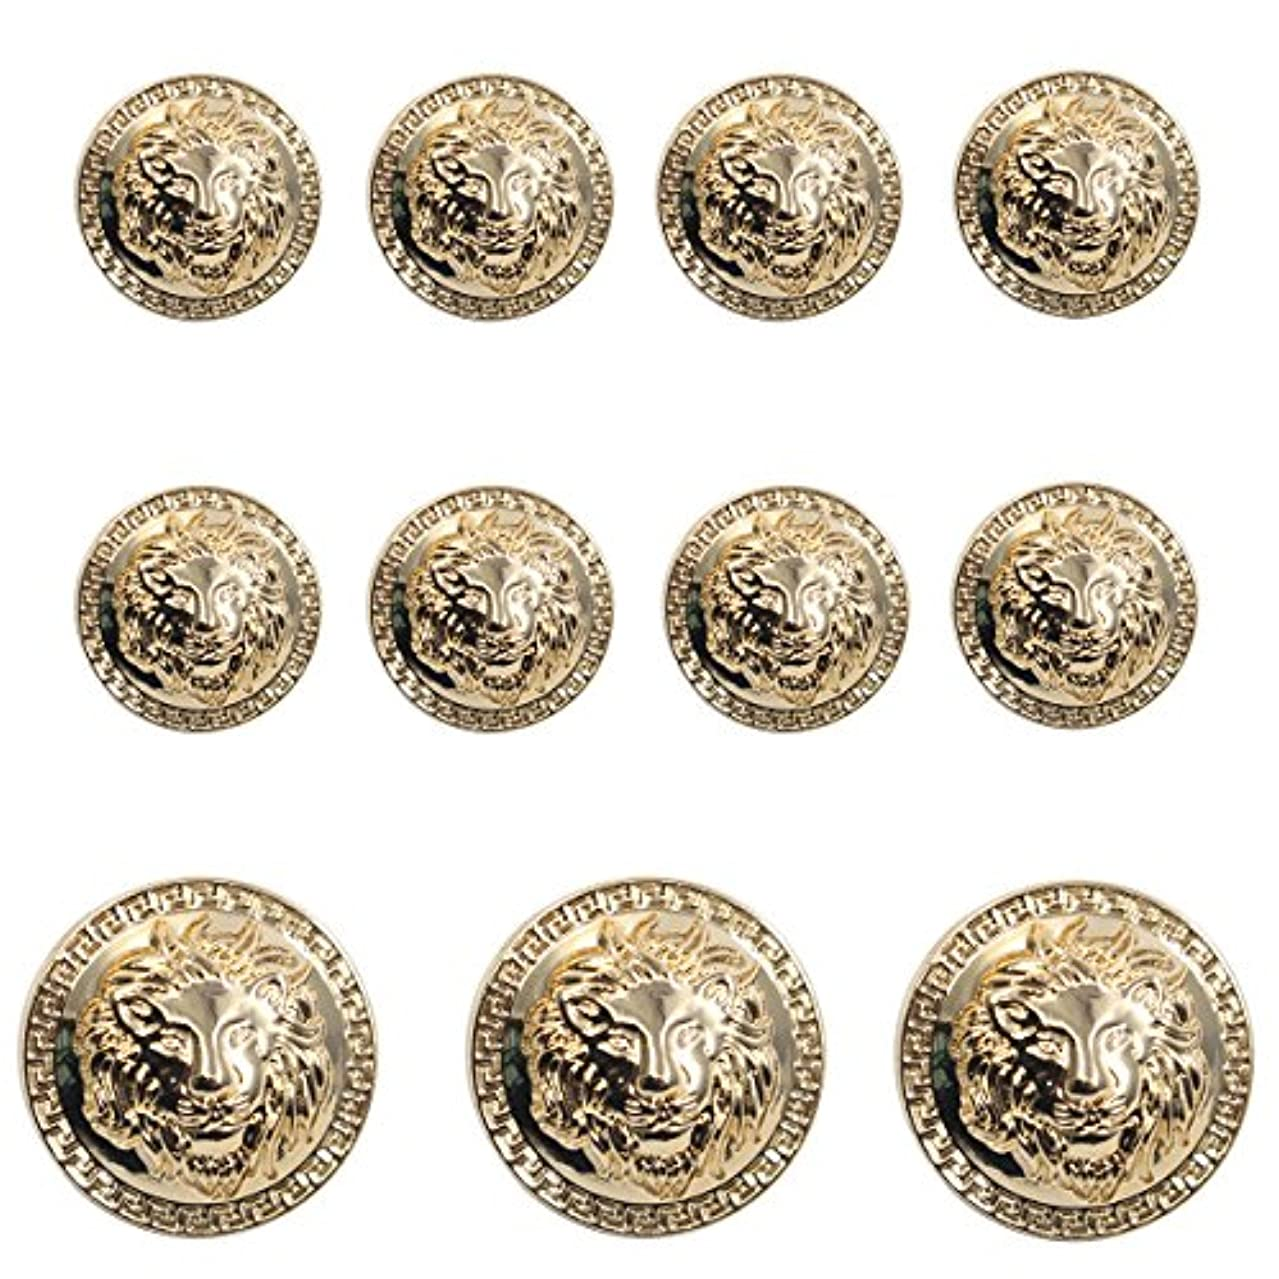 11 Pieces Gold Vintage Antique Metal Blazer Button Set - 3D Lion Head - for Blazer, Suits, Sport Coat, Uniform, Jacket